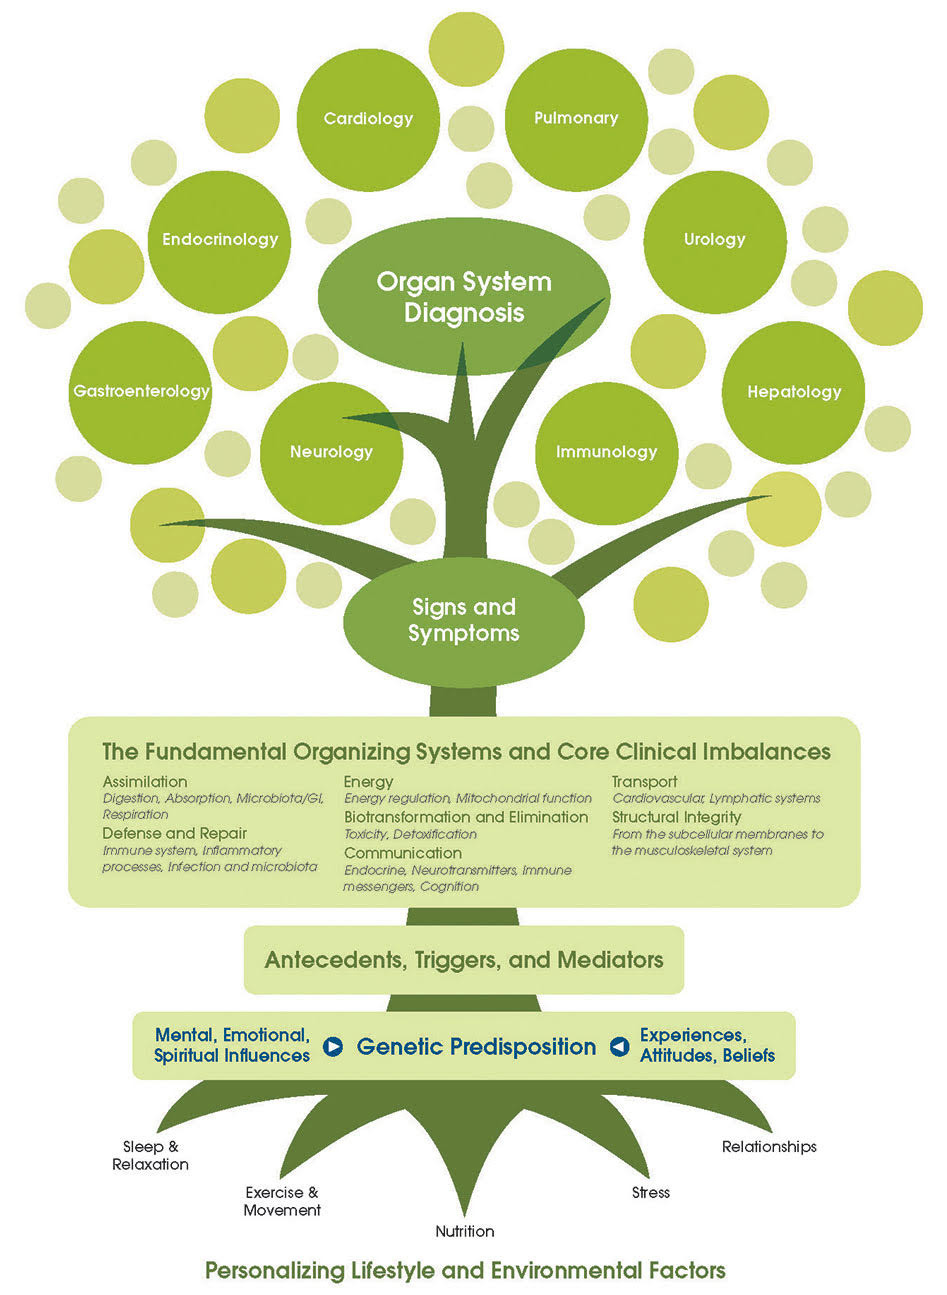 Science and the Individual: The Principles of Functional Medicine by Dr. Erin Stefanacci